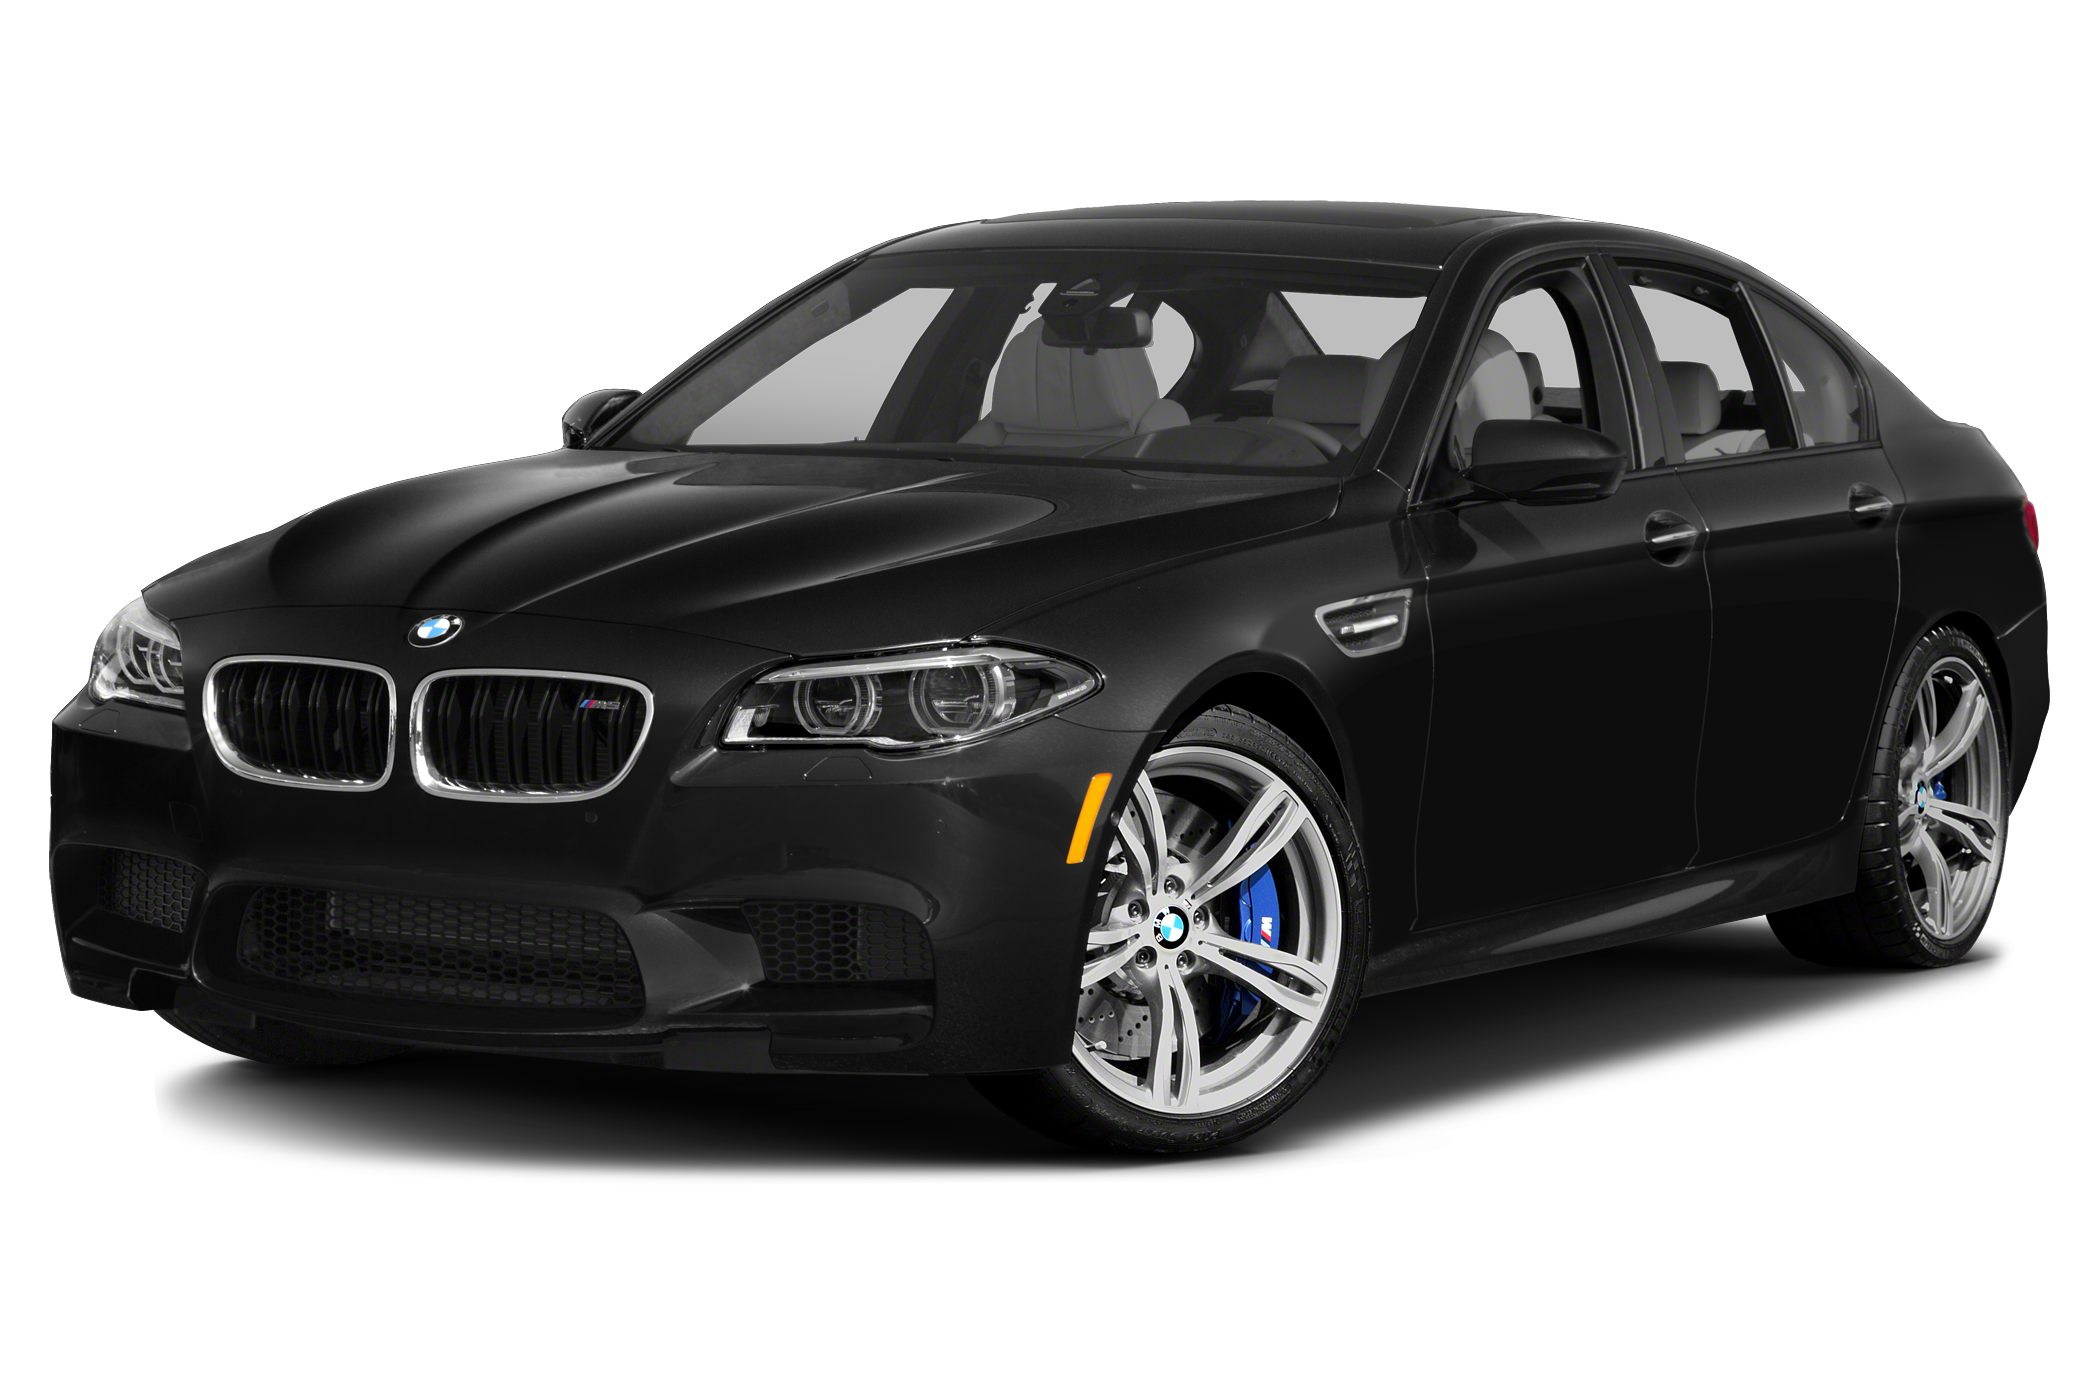 BMW M5 Pricing, Reviews and New Model Information - Autoblog